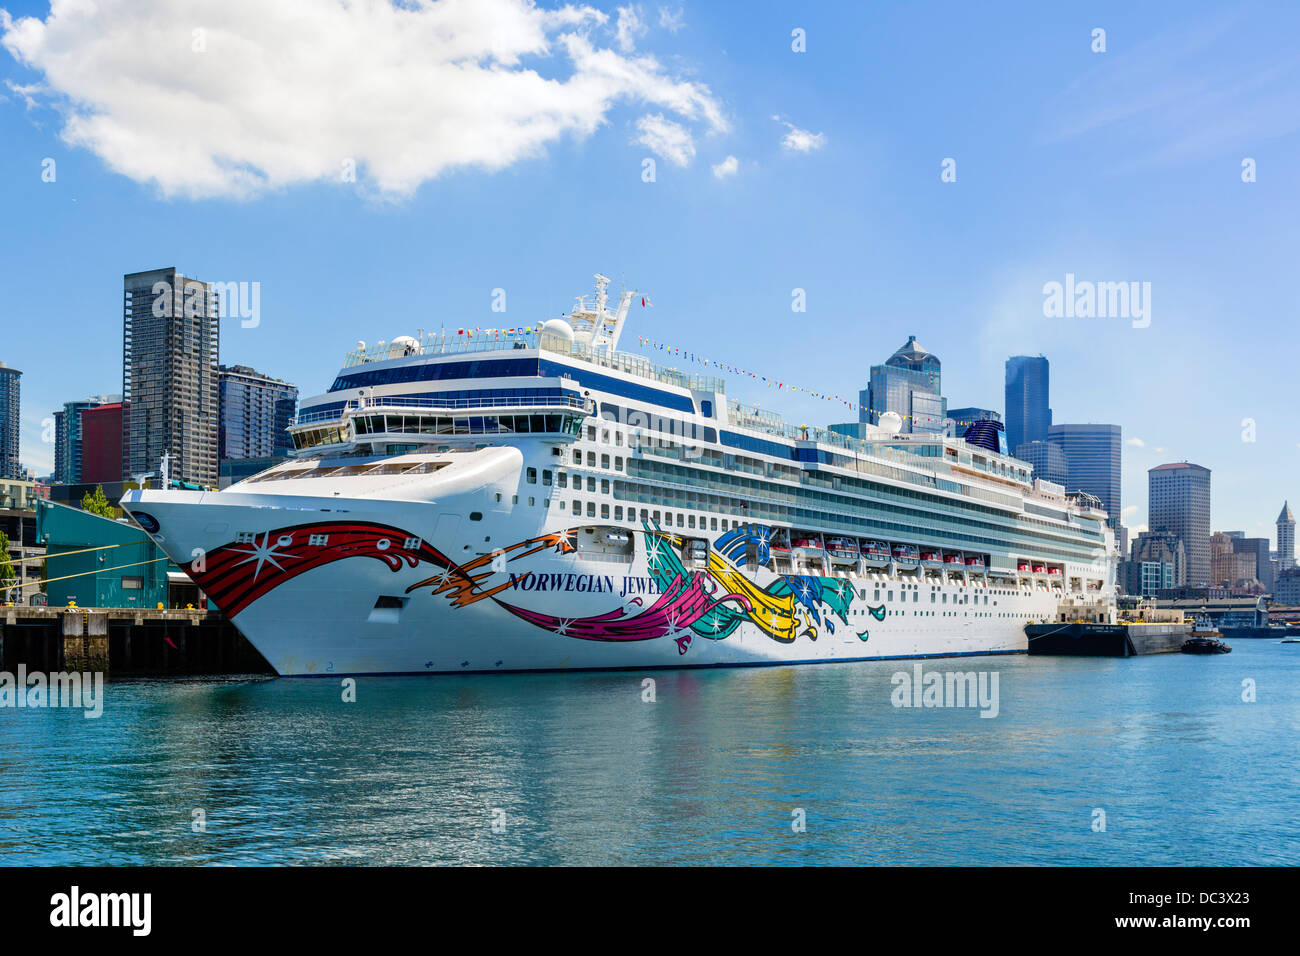 The Norwegian Cruise Lines cruise ship 'Norwegian Jewel' docked at the harbor in Seattle, Washington, USA - Stock Image